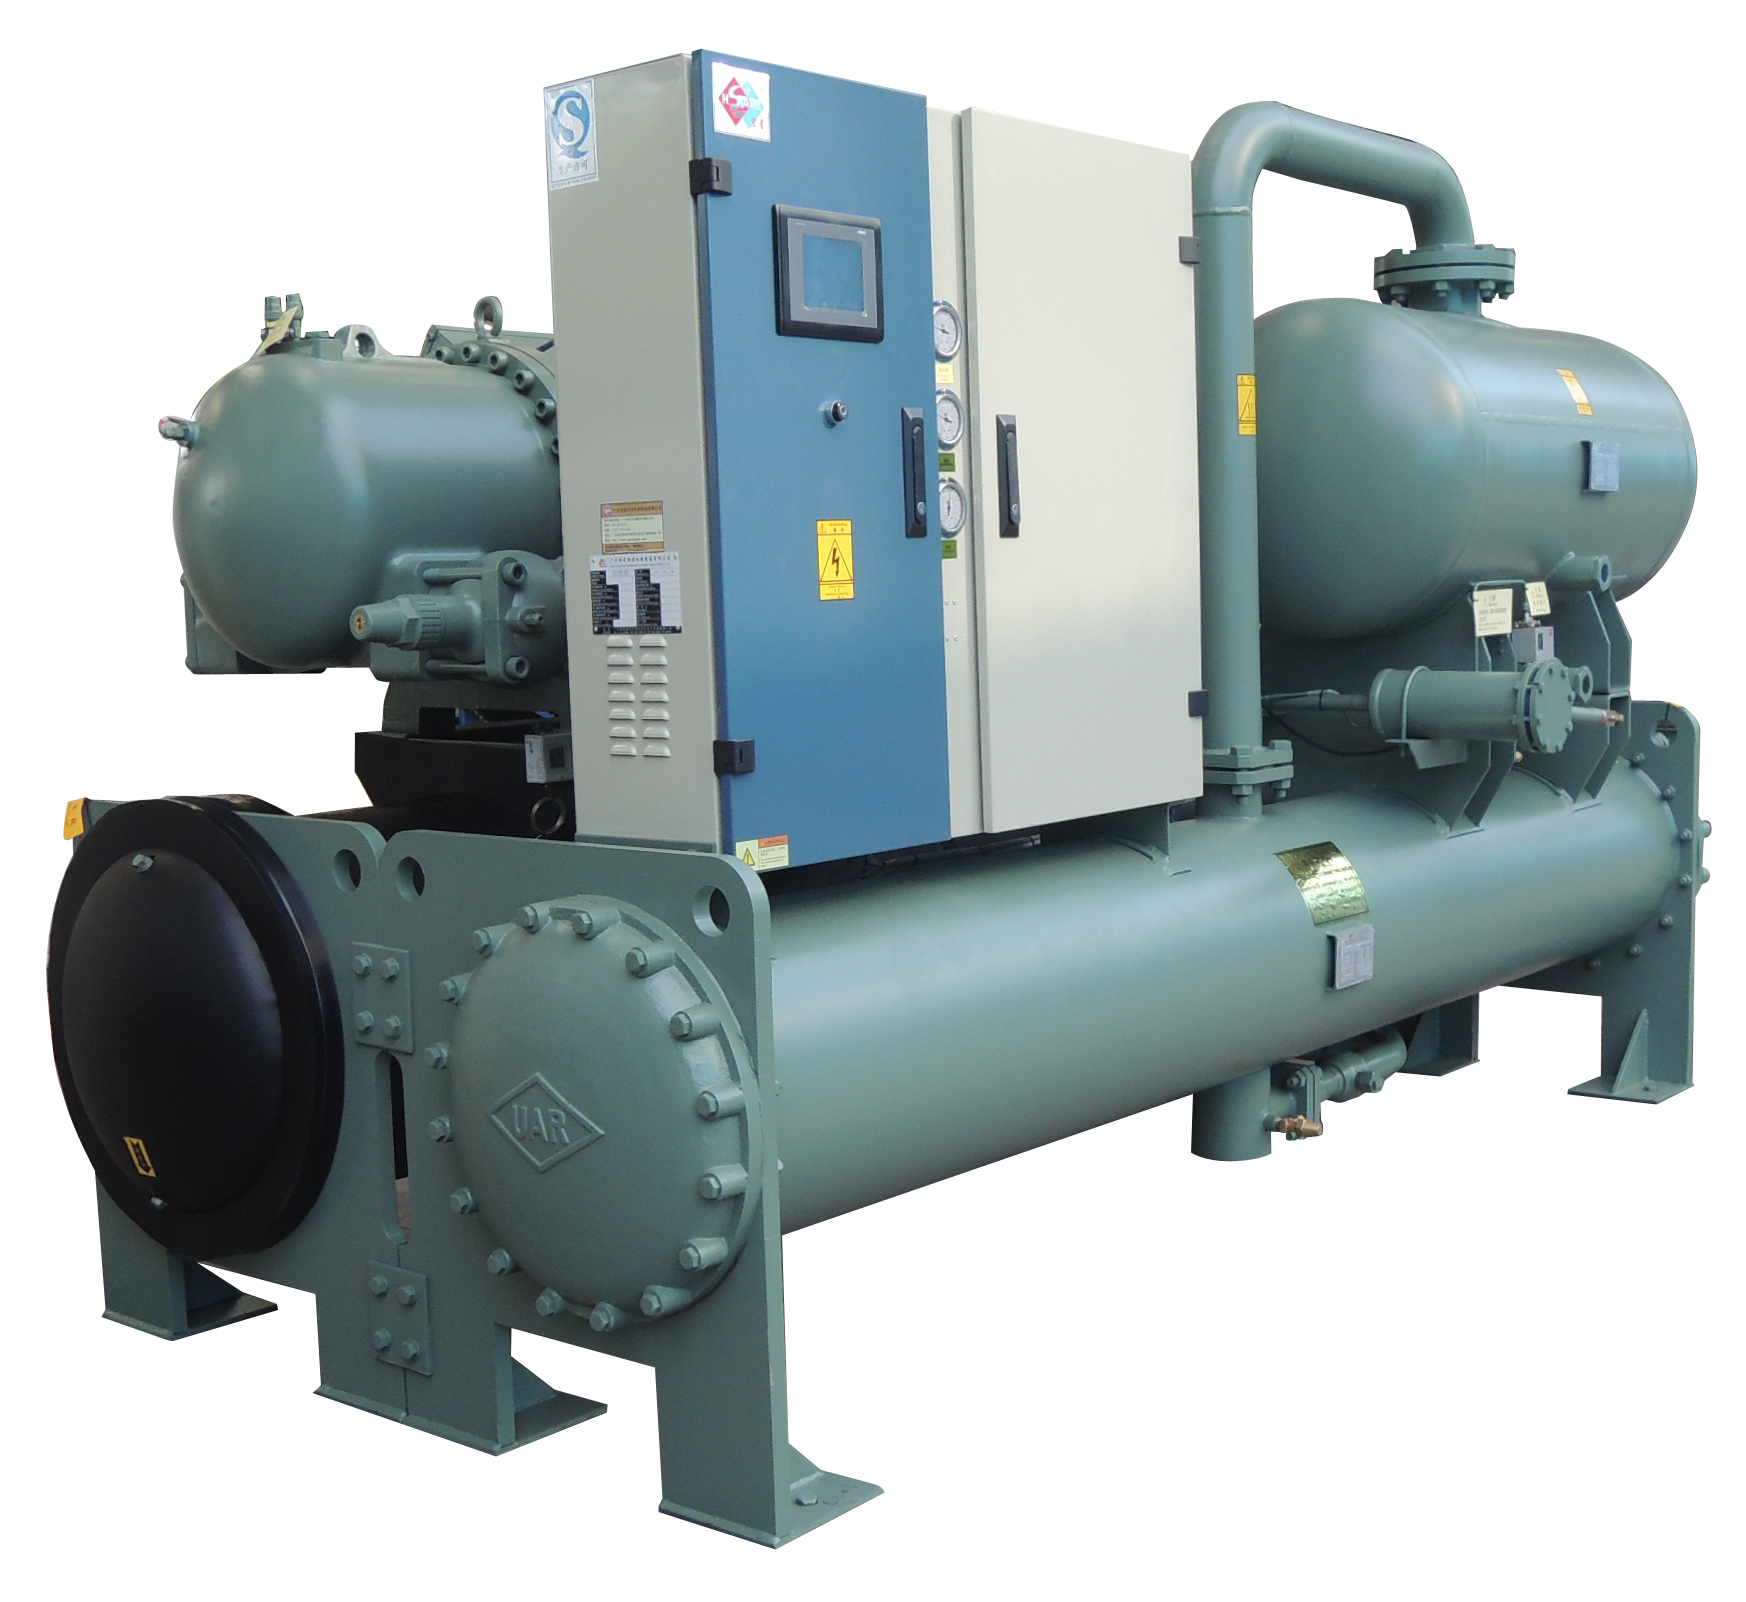 59b4122fe3fdae52eba480b2a3918a0e remote control trane water cooled centrifugal chiller just air  at bayanpartner.co